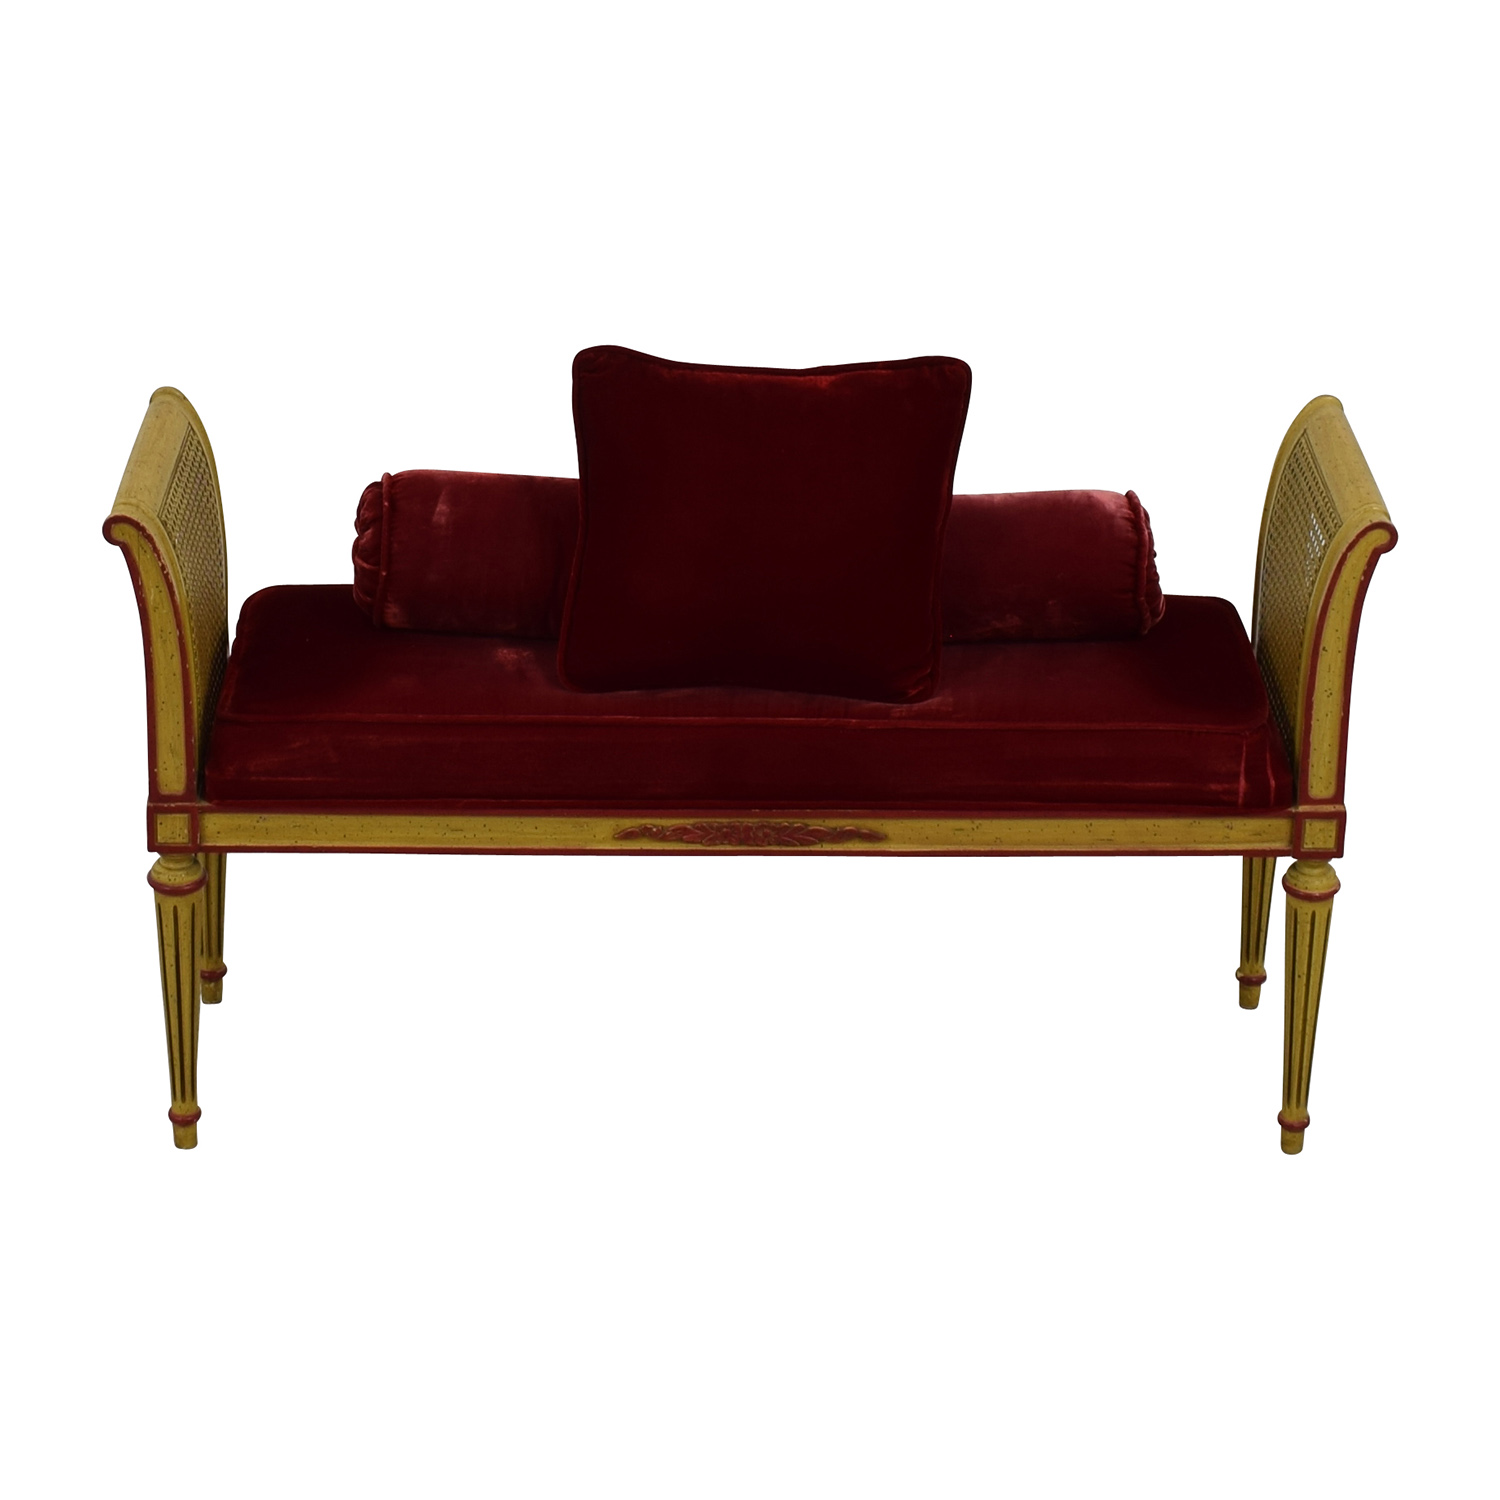 shop Antique Bench with Red Velvet Cushion and Pillow